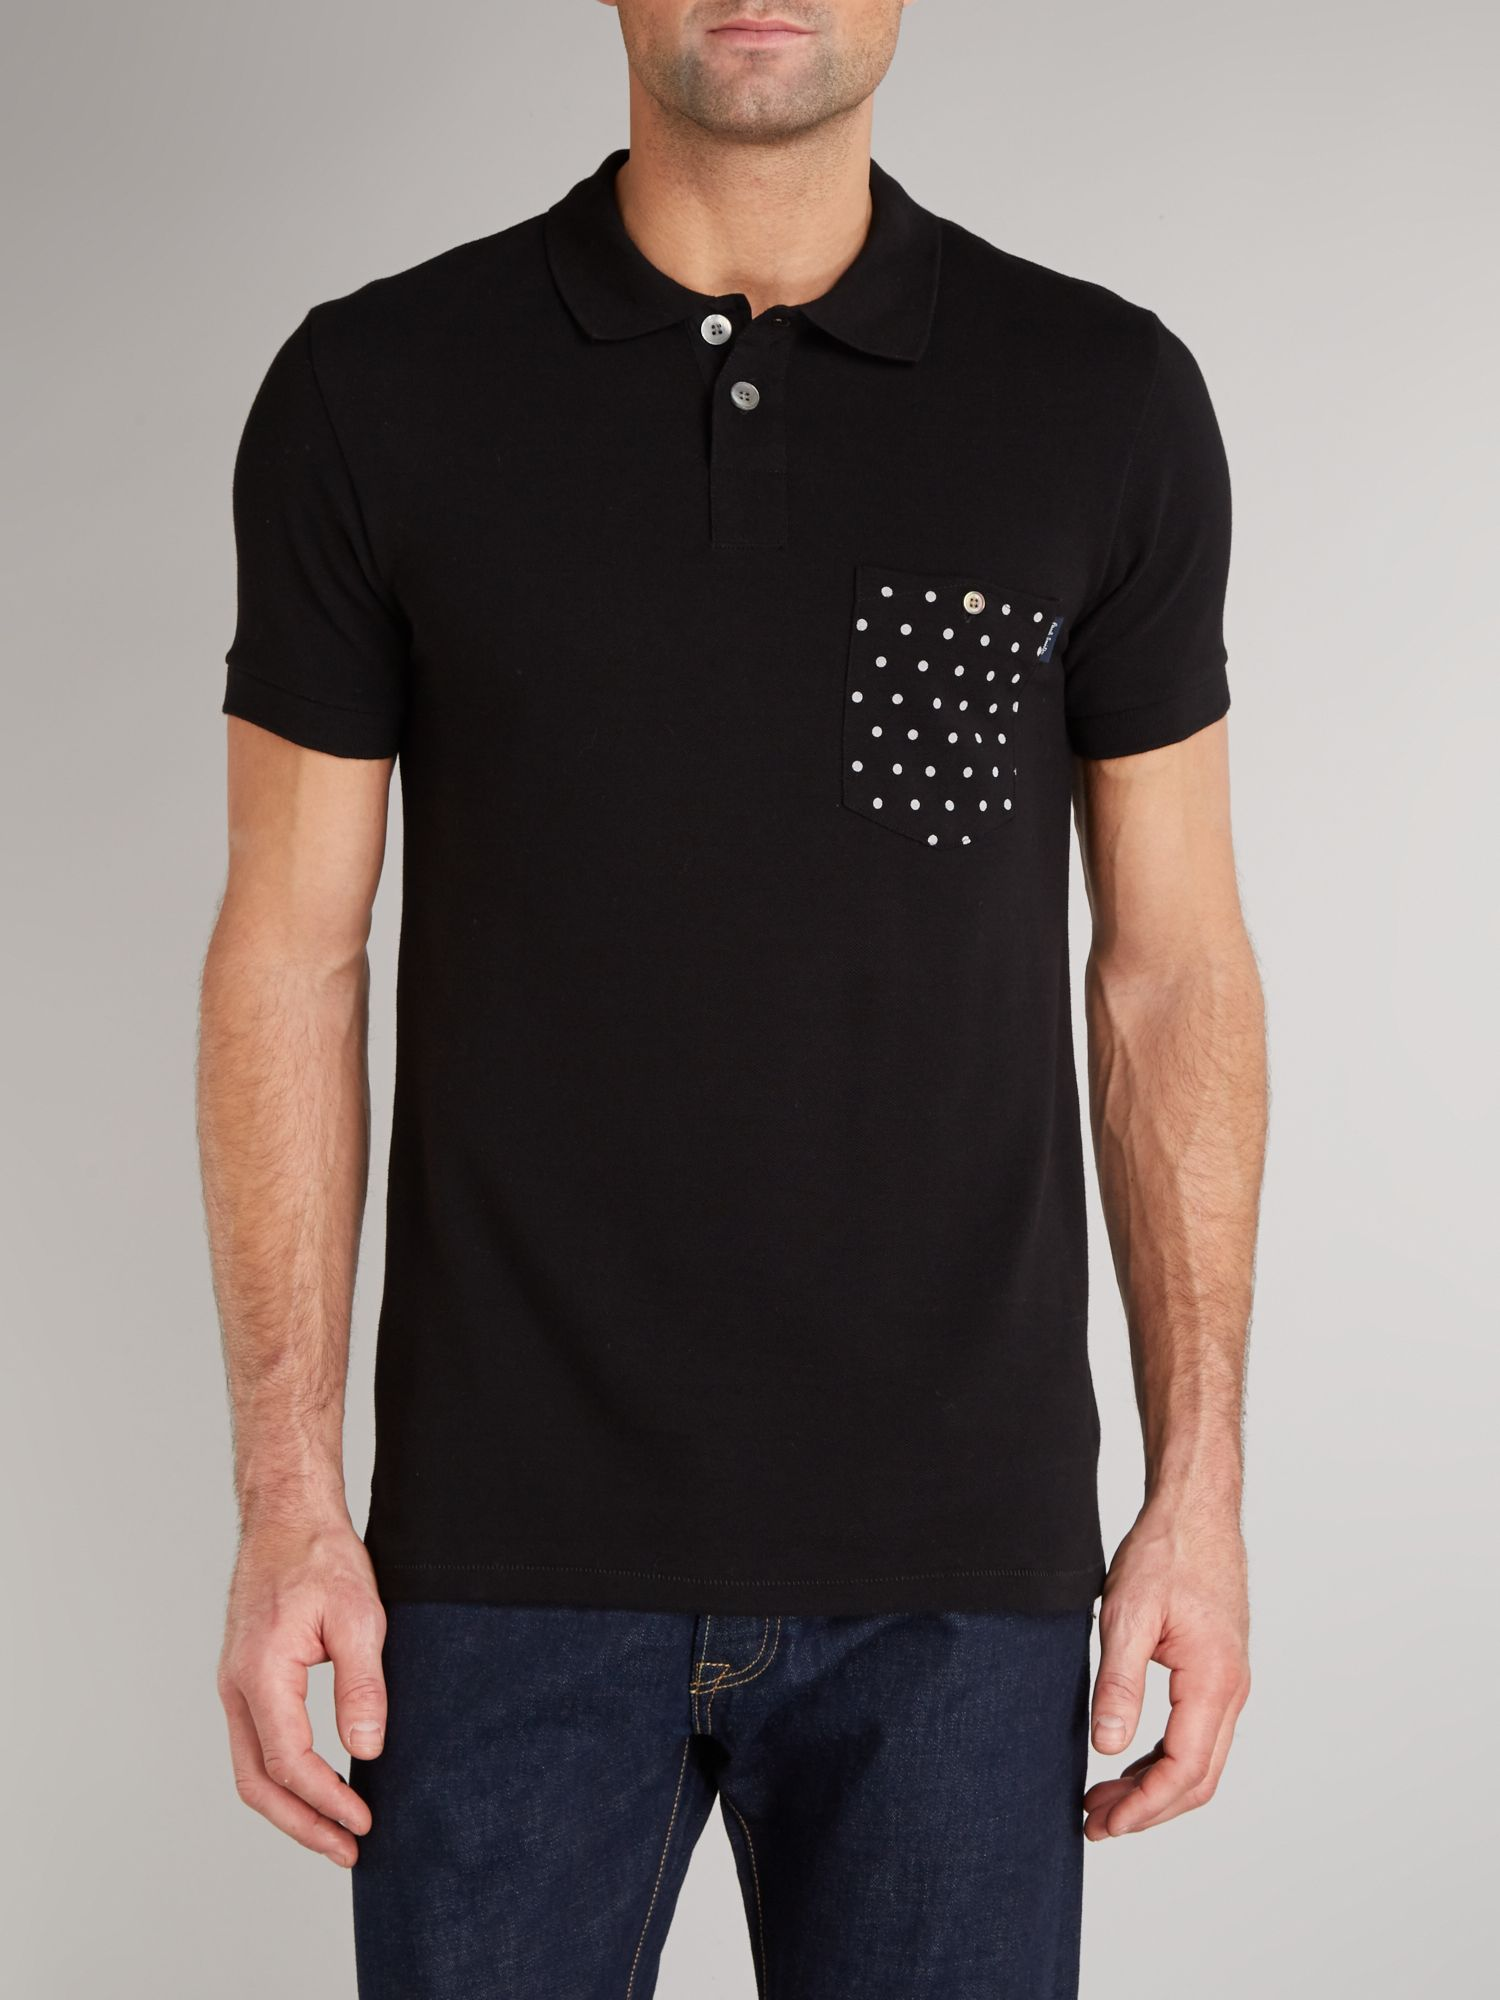 Spot pocket polo shirt